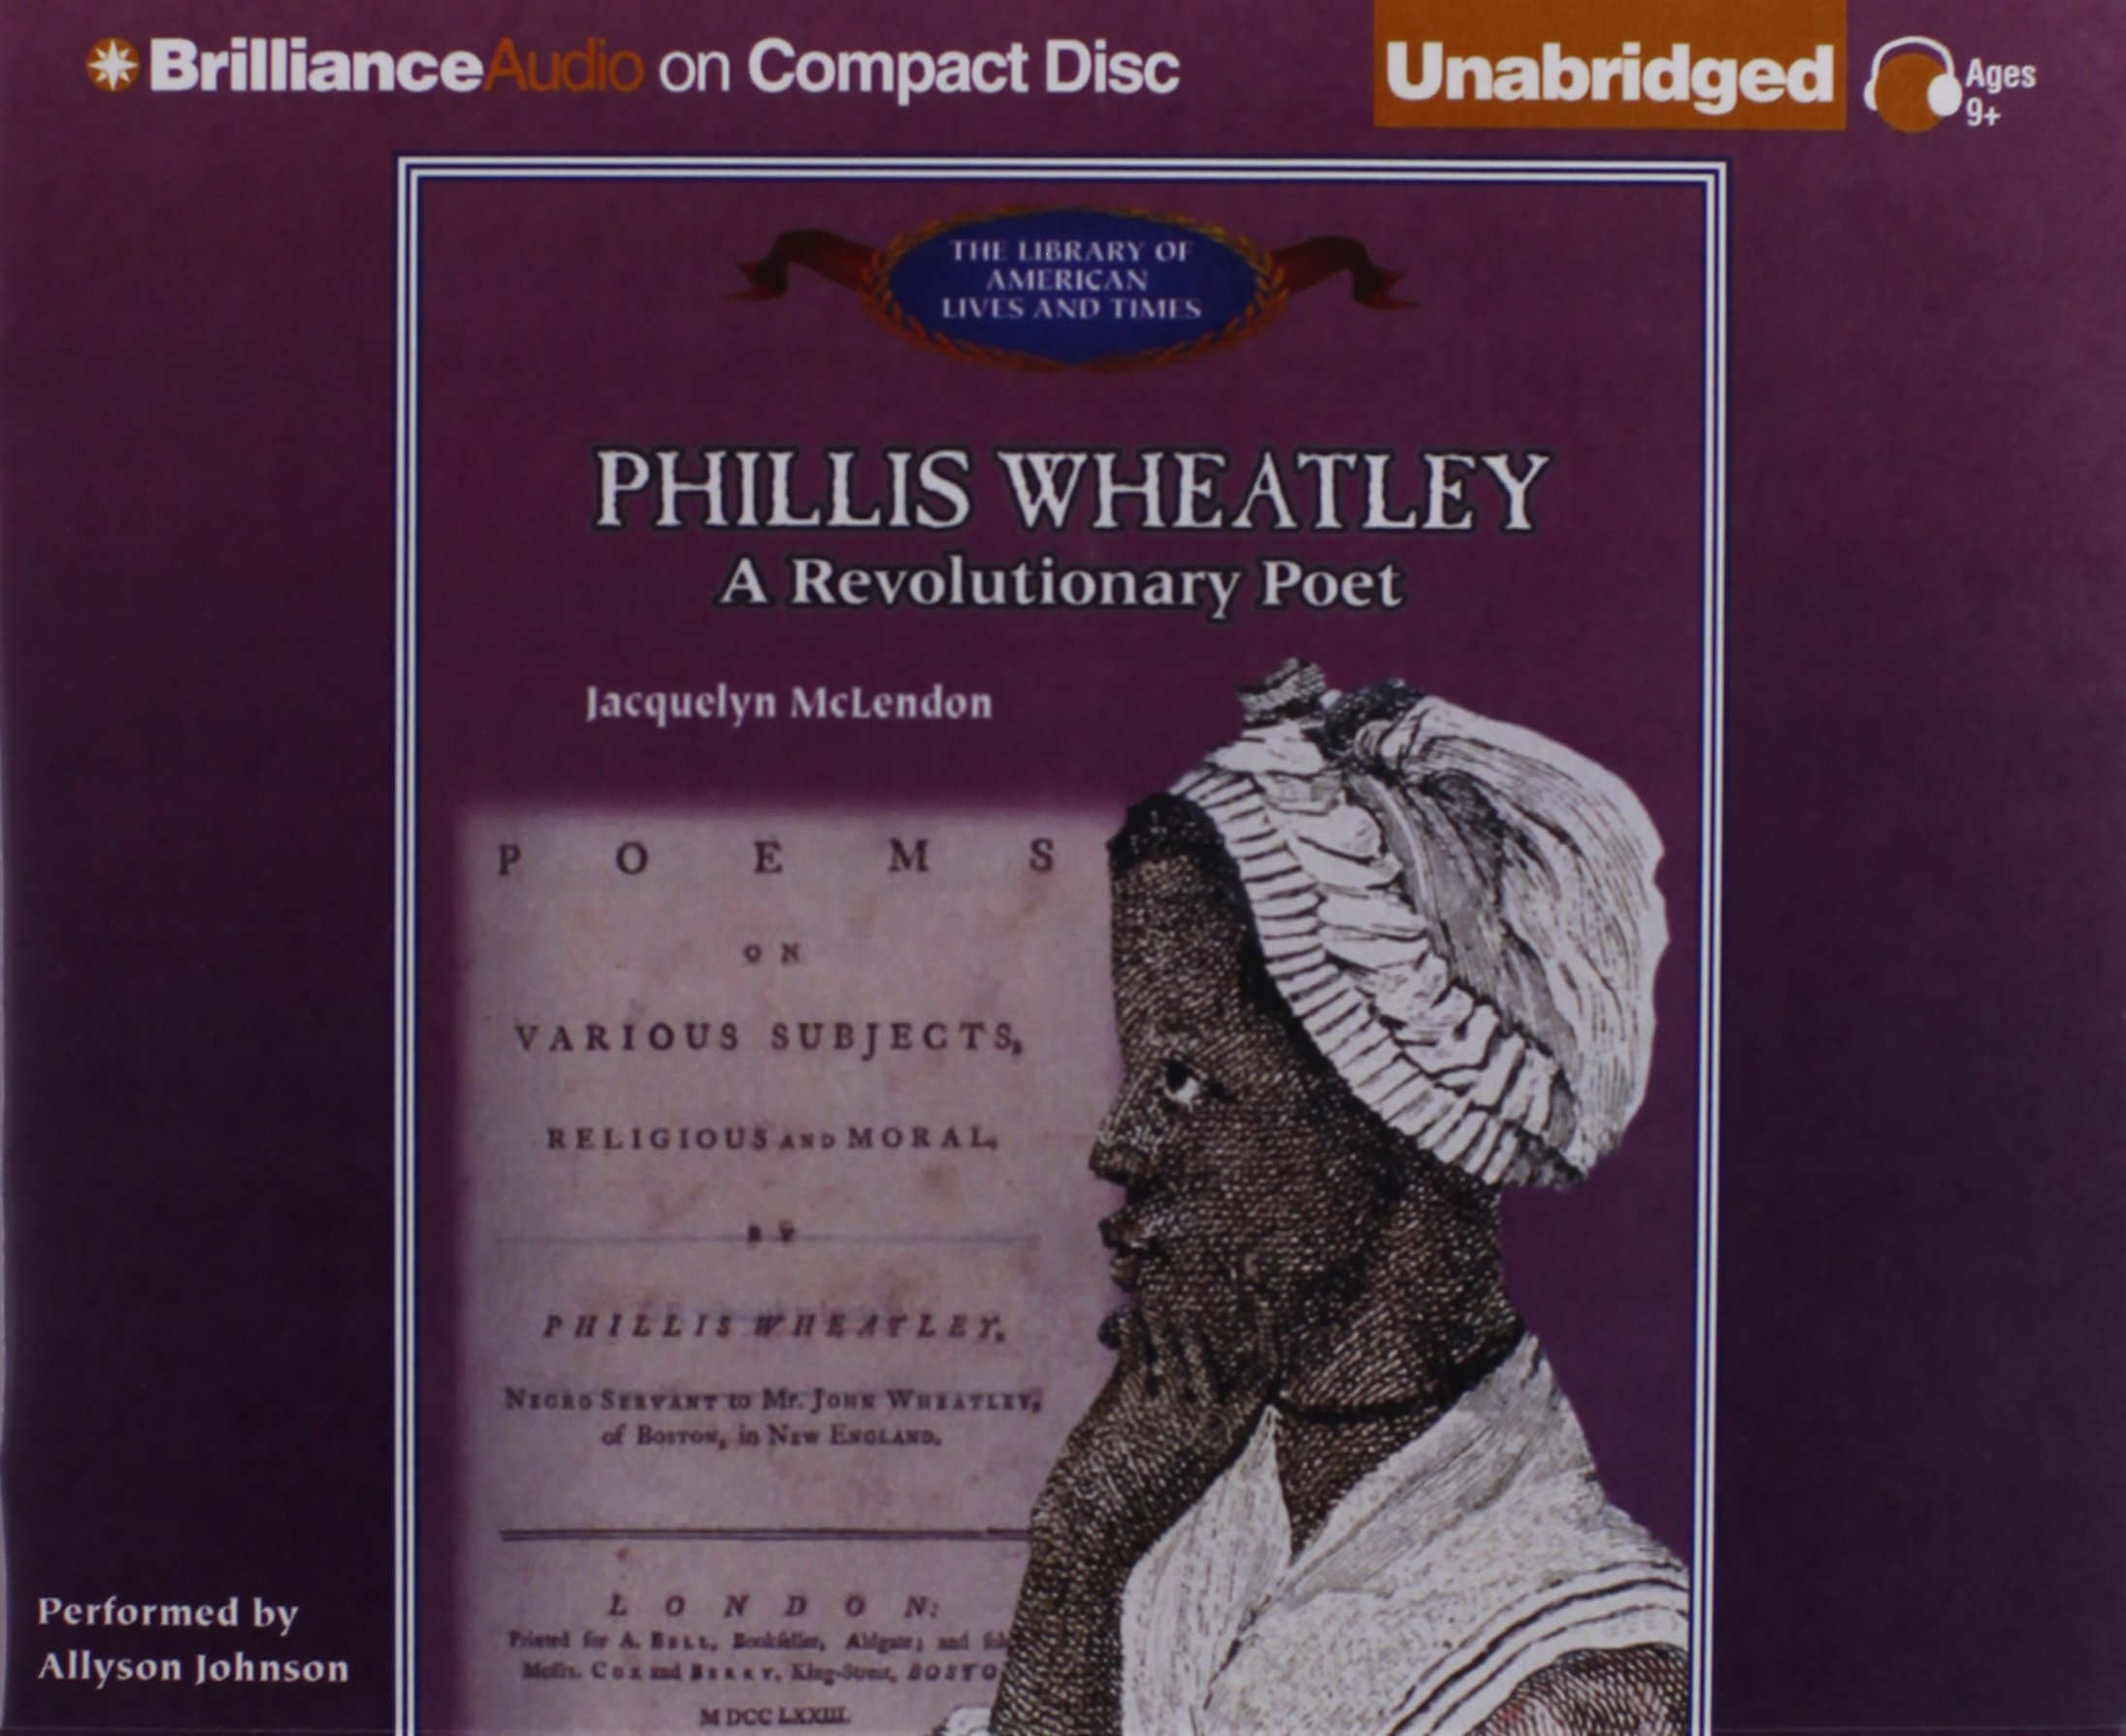 Phillis Wheatley: A Revolutionary Poet (The Library of American Lives and Times Series)